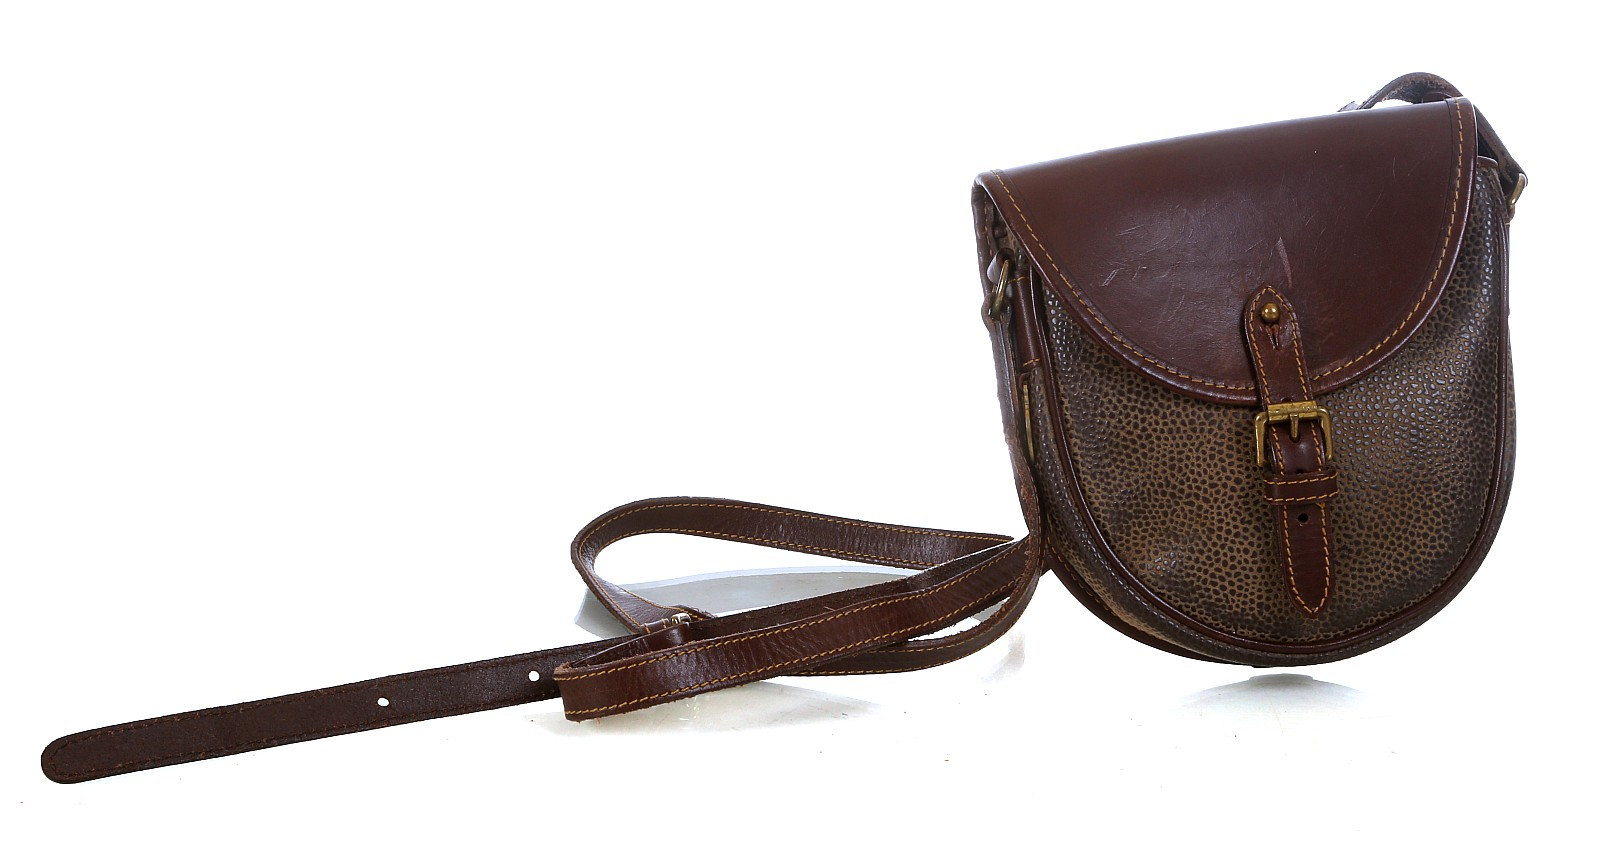 c8c9147ede ... closeout lot 91 early mulberry saddle bag 1970s scotchgrain with 12515  ee7cd